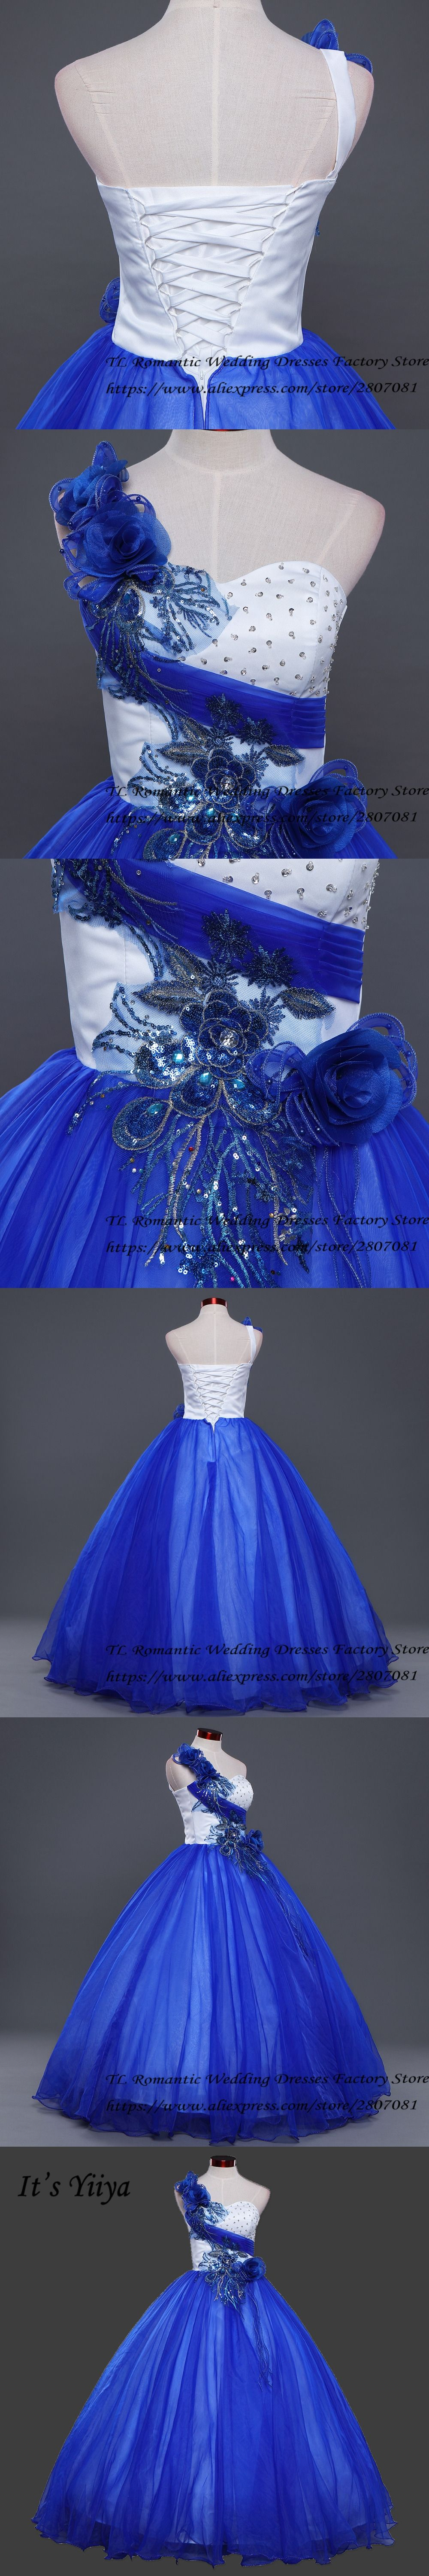 Vestido de casamento strapless wedding dresses blue pink rose red